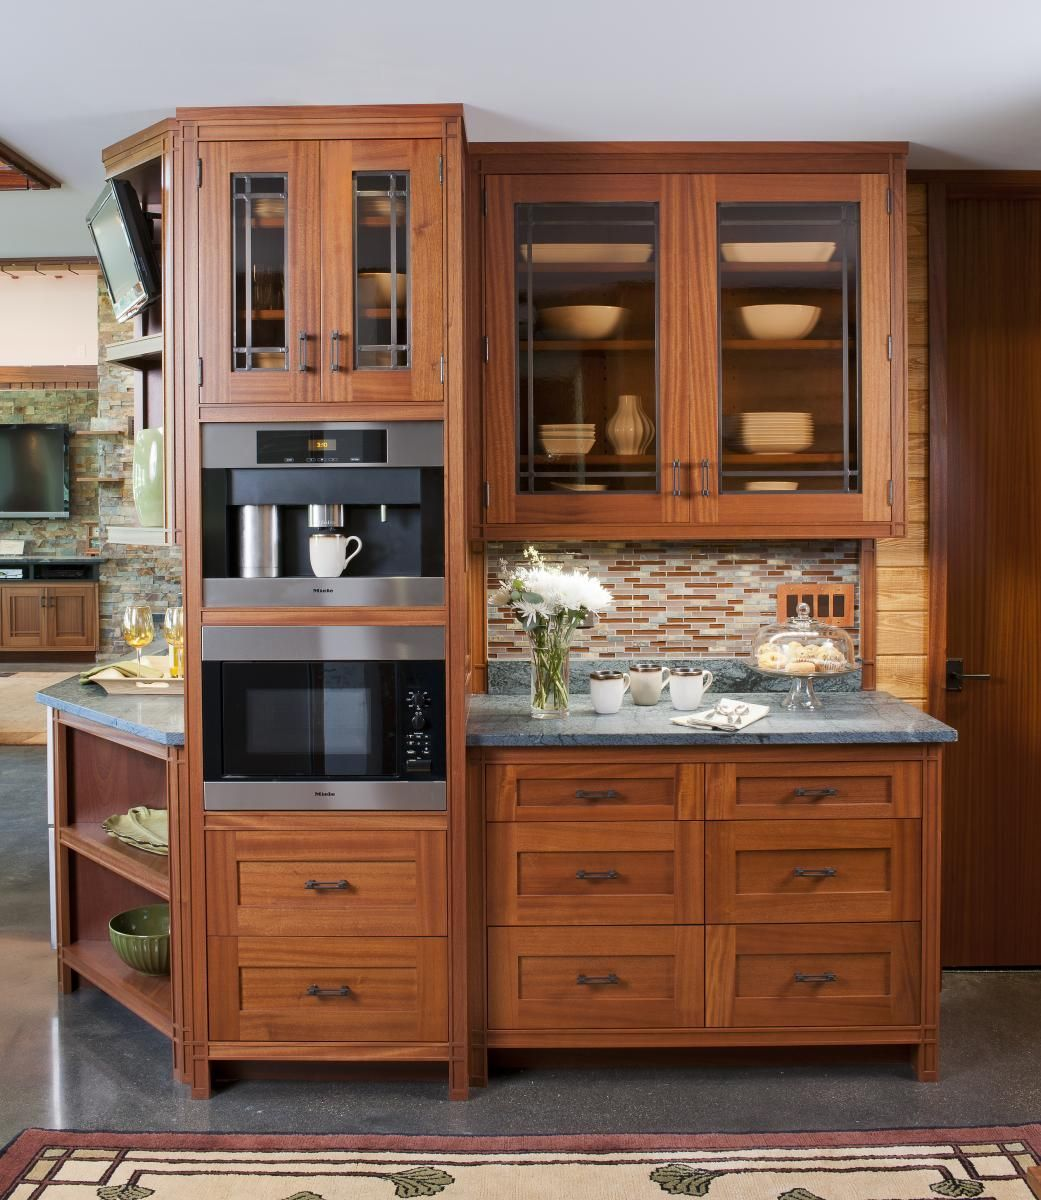 Kitchen Cabinets Look Like Furniture: Built-in And Storage Station (Cultivate.com)